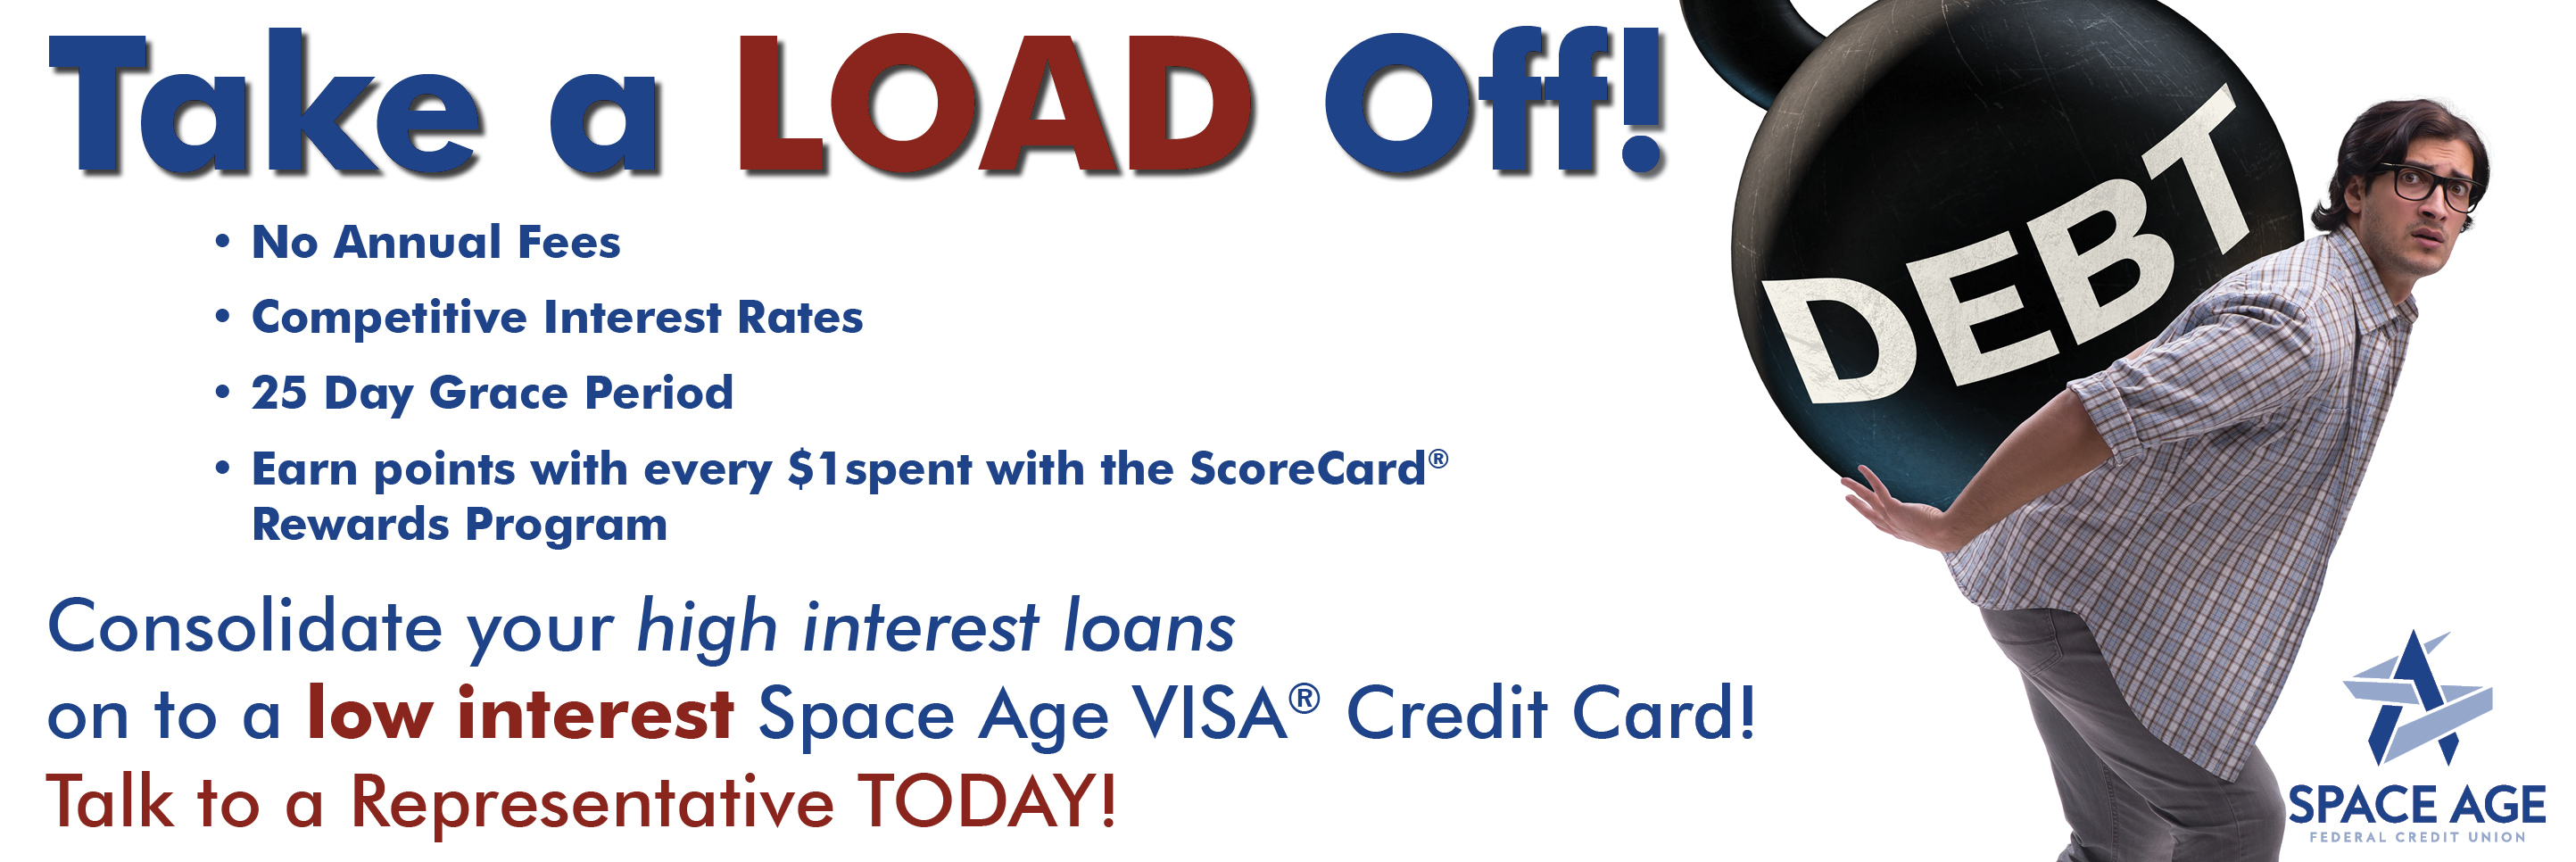 Consolidate your high interest loans on to a low interest  Space Age VISA Credit Card! Talk to a Representative TODAY!